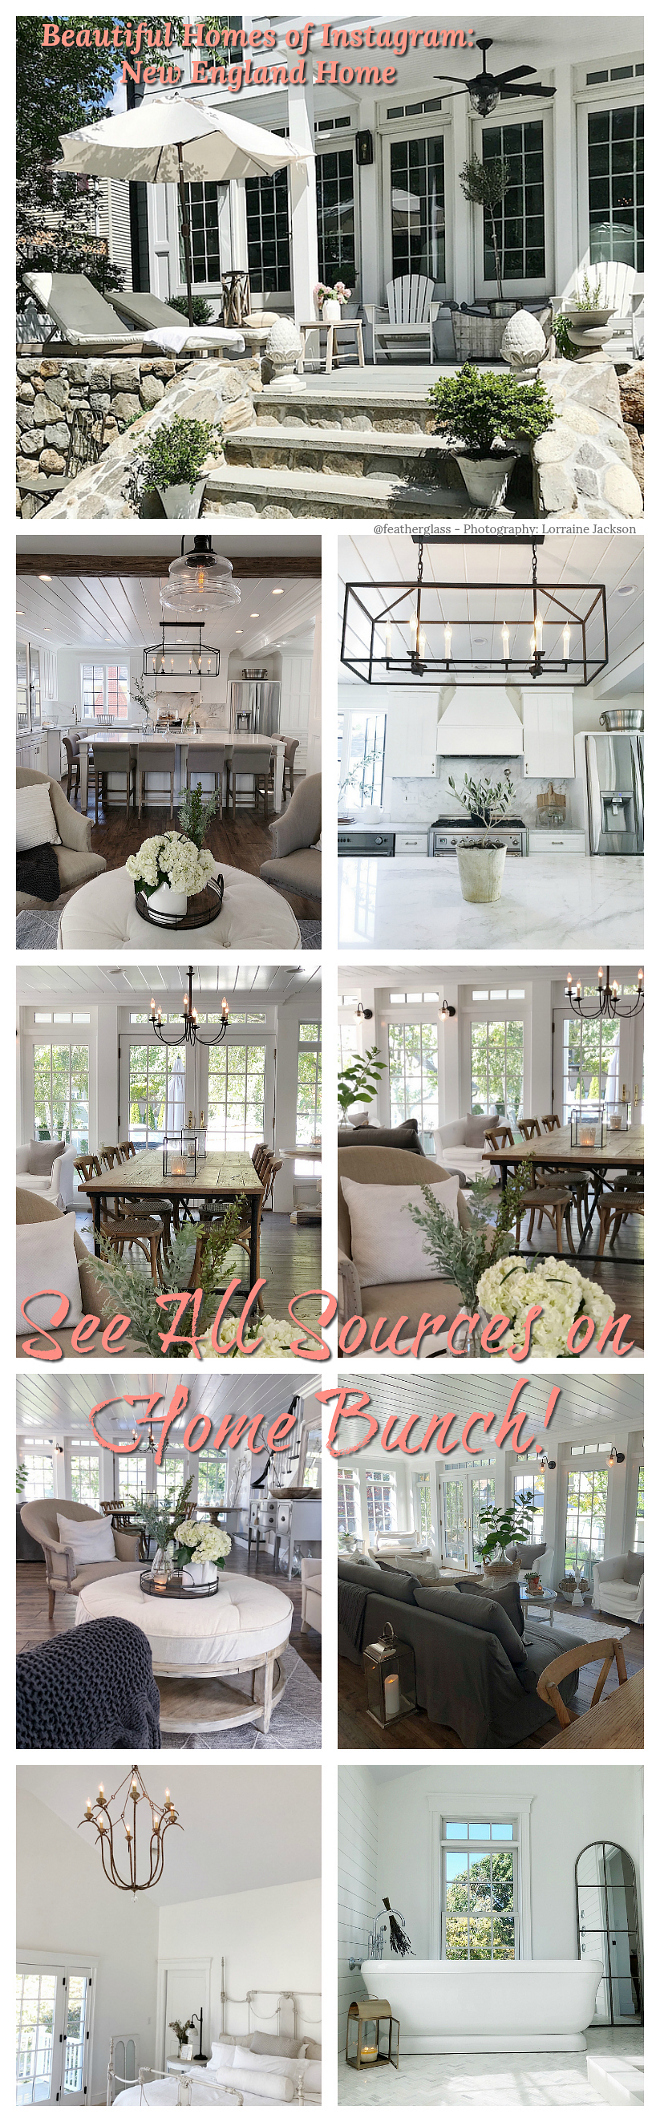 Beautiful Homes of Instagram New England Home Beautiful Homes of Instagram New England Home #BeautifulHomes #Instagram #NewEnglandHomes